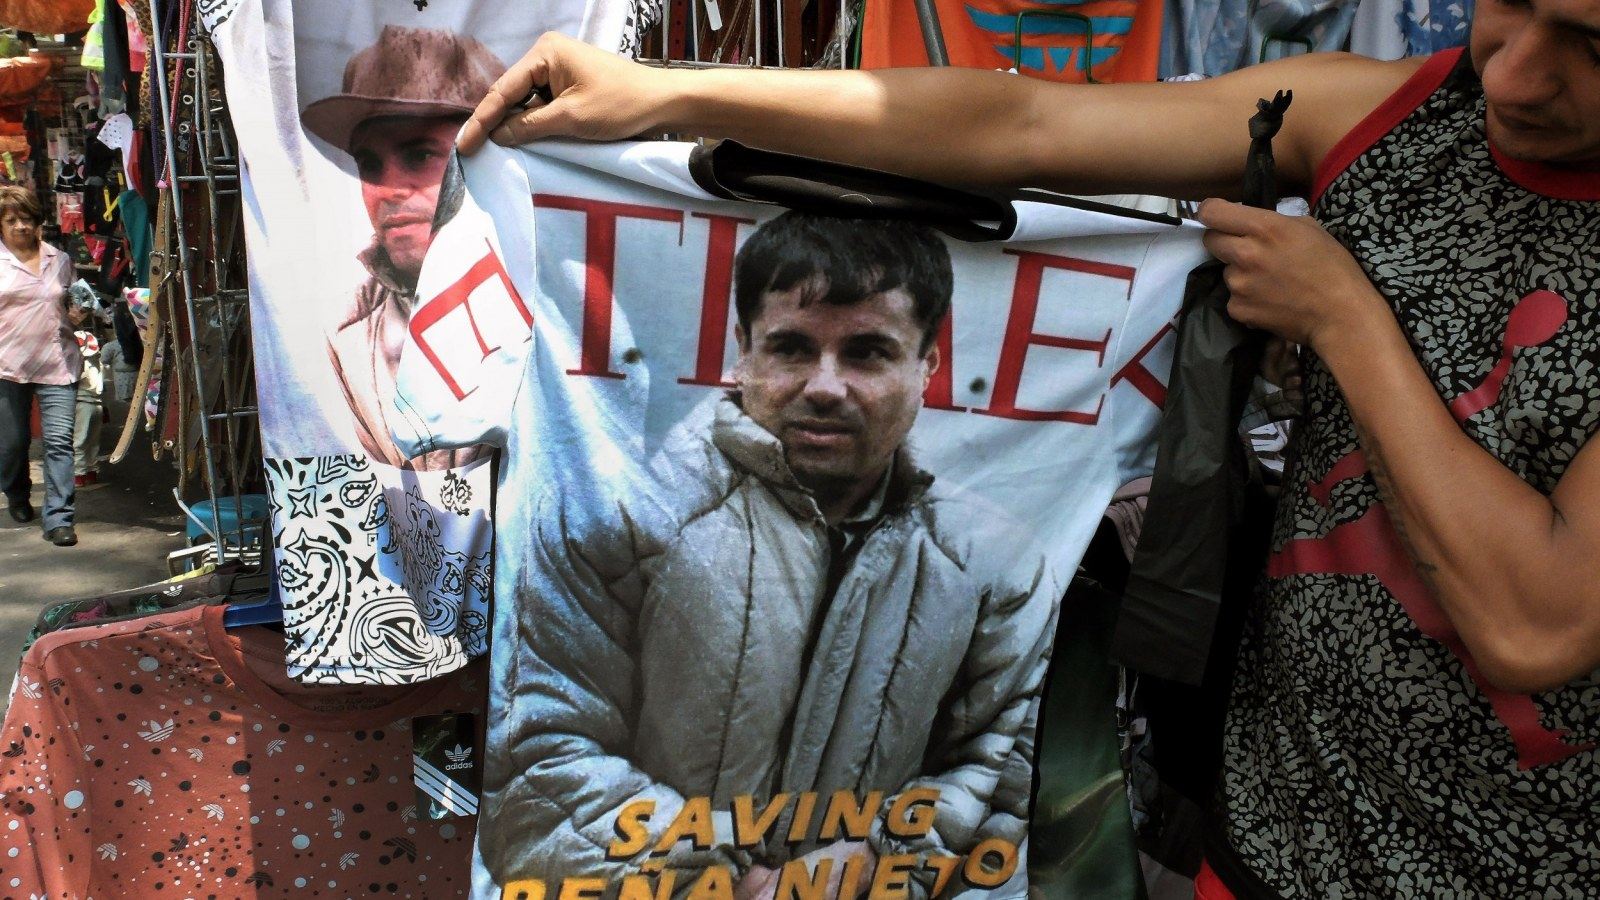 El Chapo Trial: Drug Lord Killed A Man For Not Shaking His